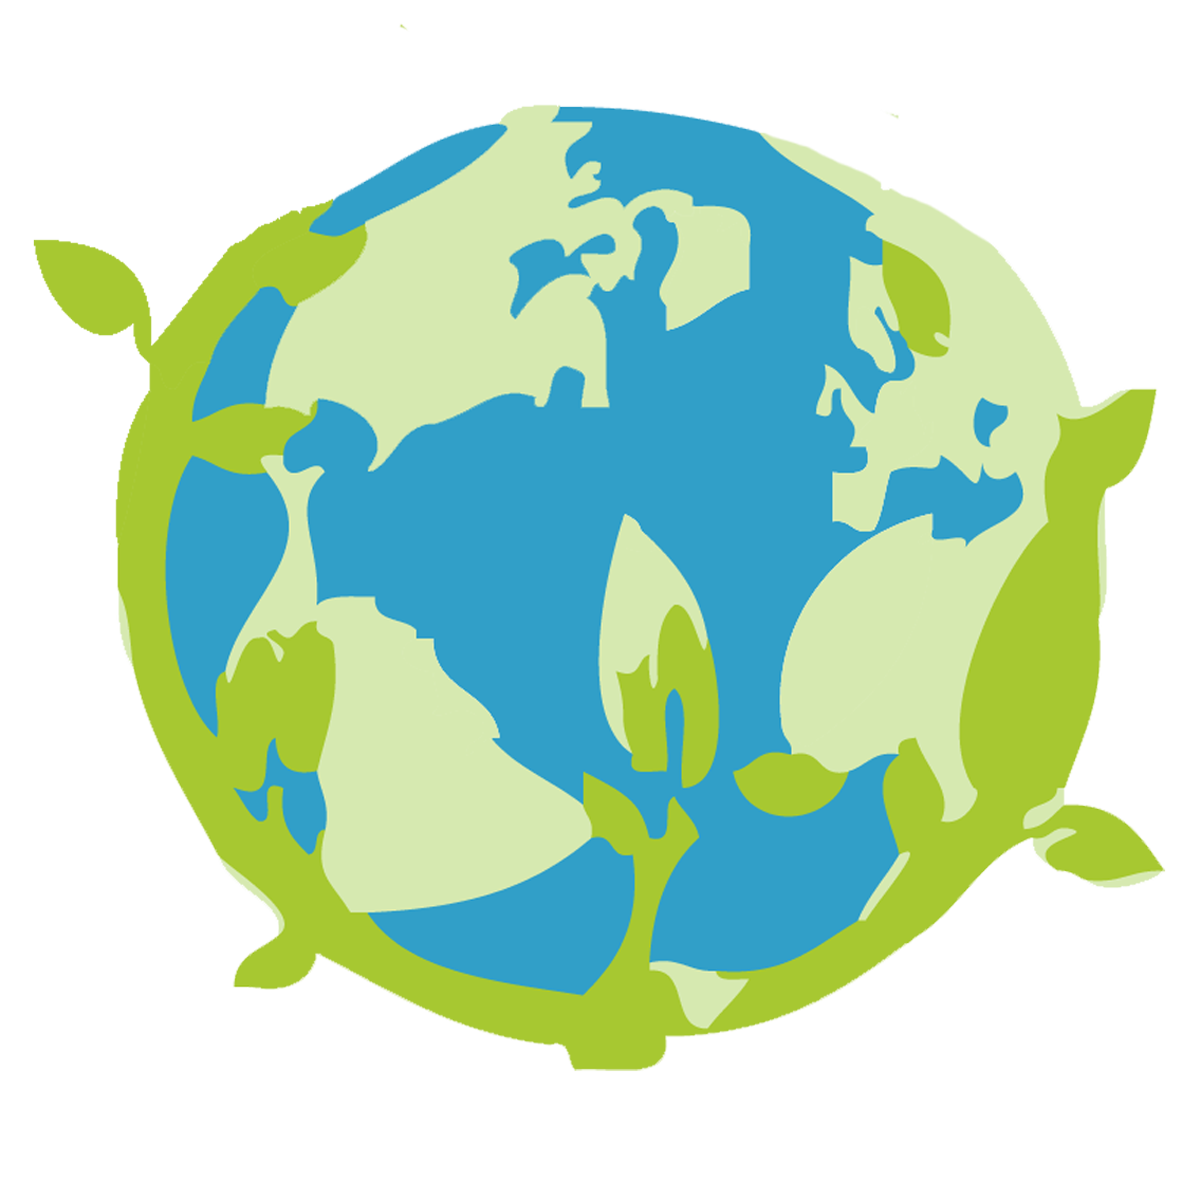 Free Earth Border Cliparts, Download Free Clip Art, Free.